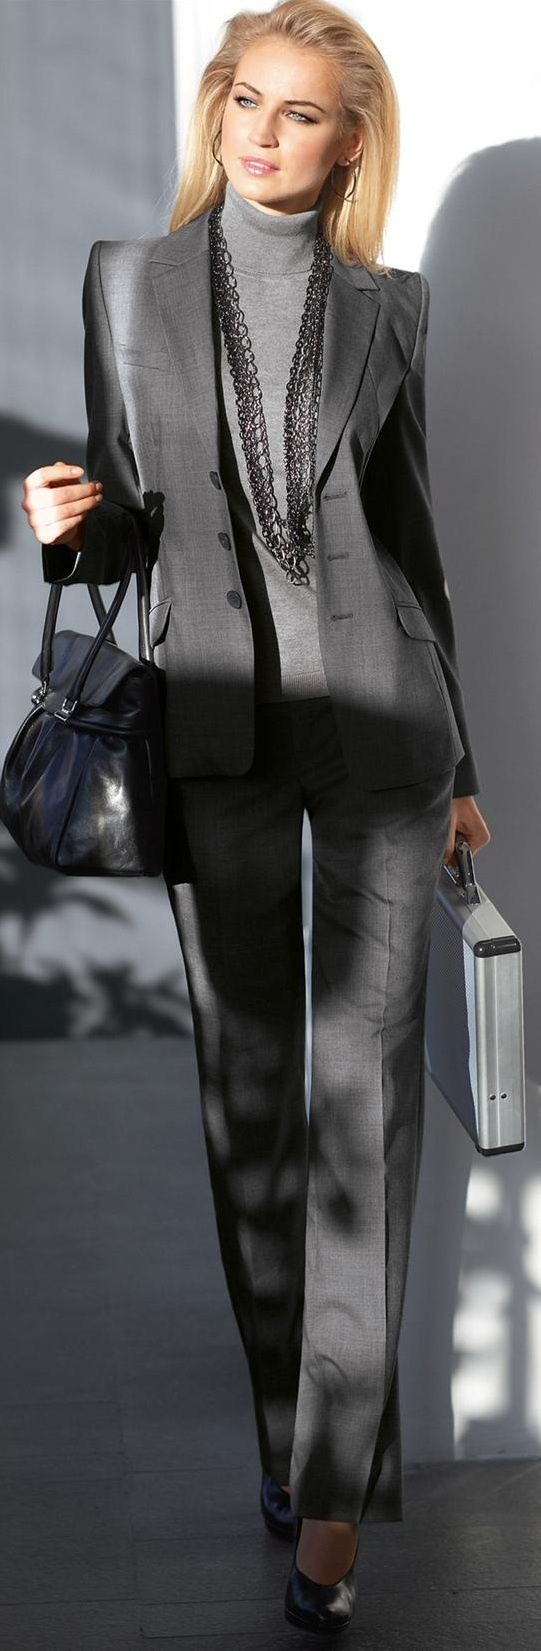 Madeleine grey suit ... it is softer than black, and adds mix-and-match versatility to a classic wardrobe